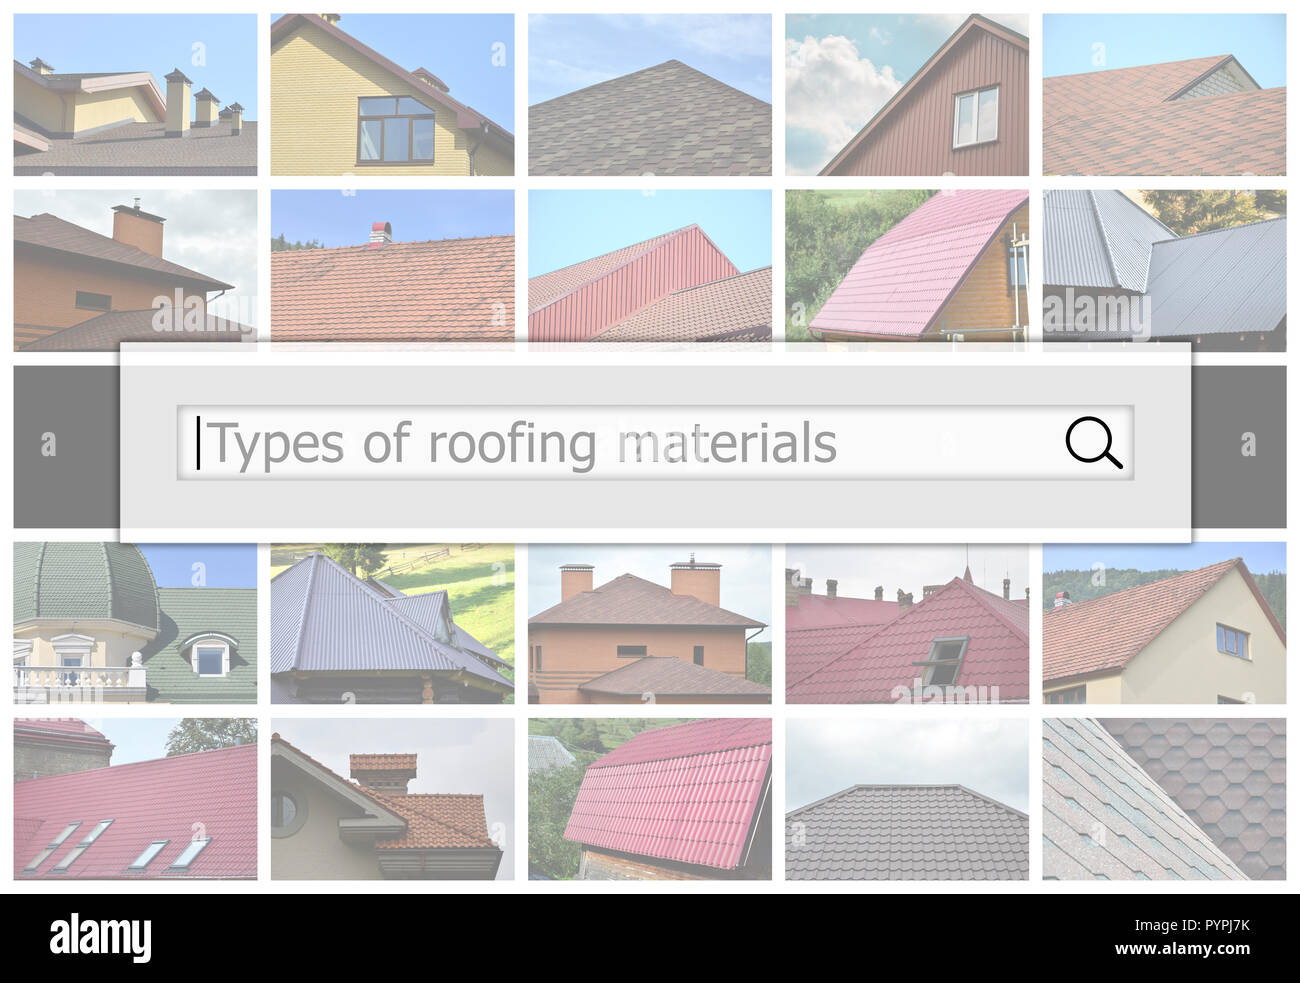 Roofing Building Design Materials High Resolution Stock Photography And Images Alamy